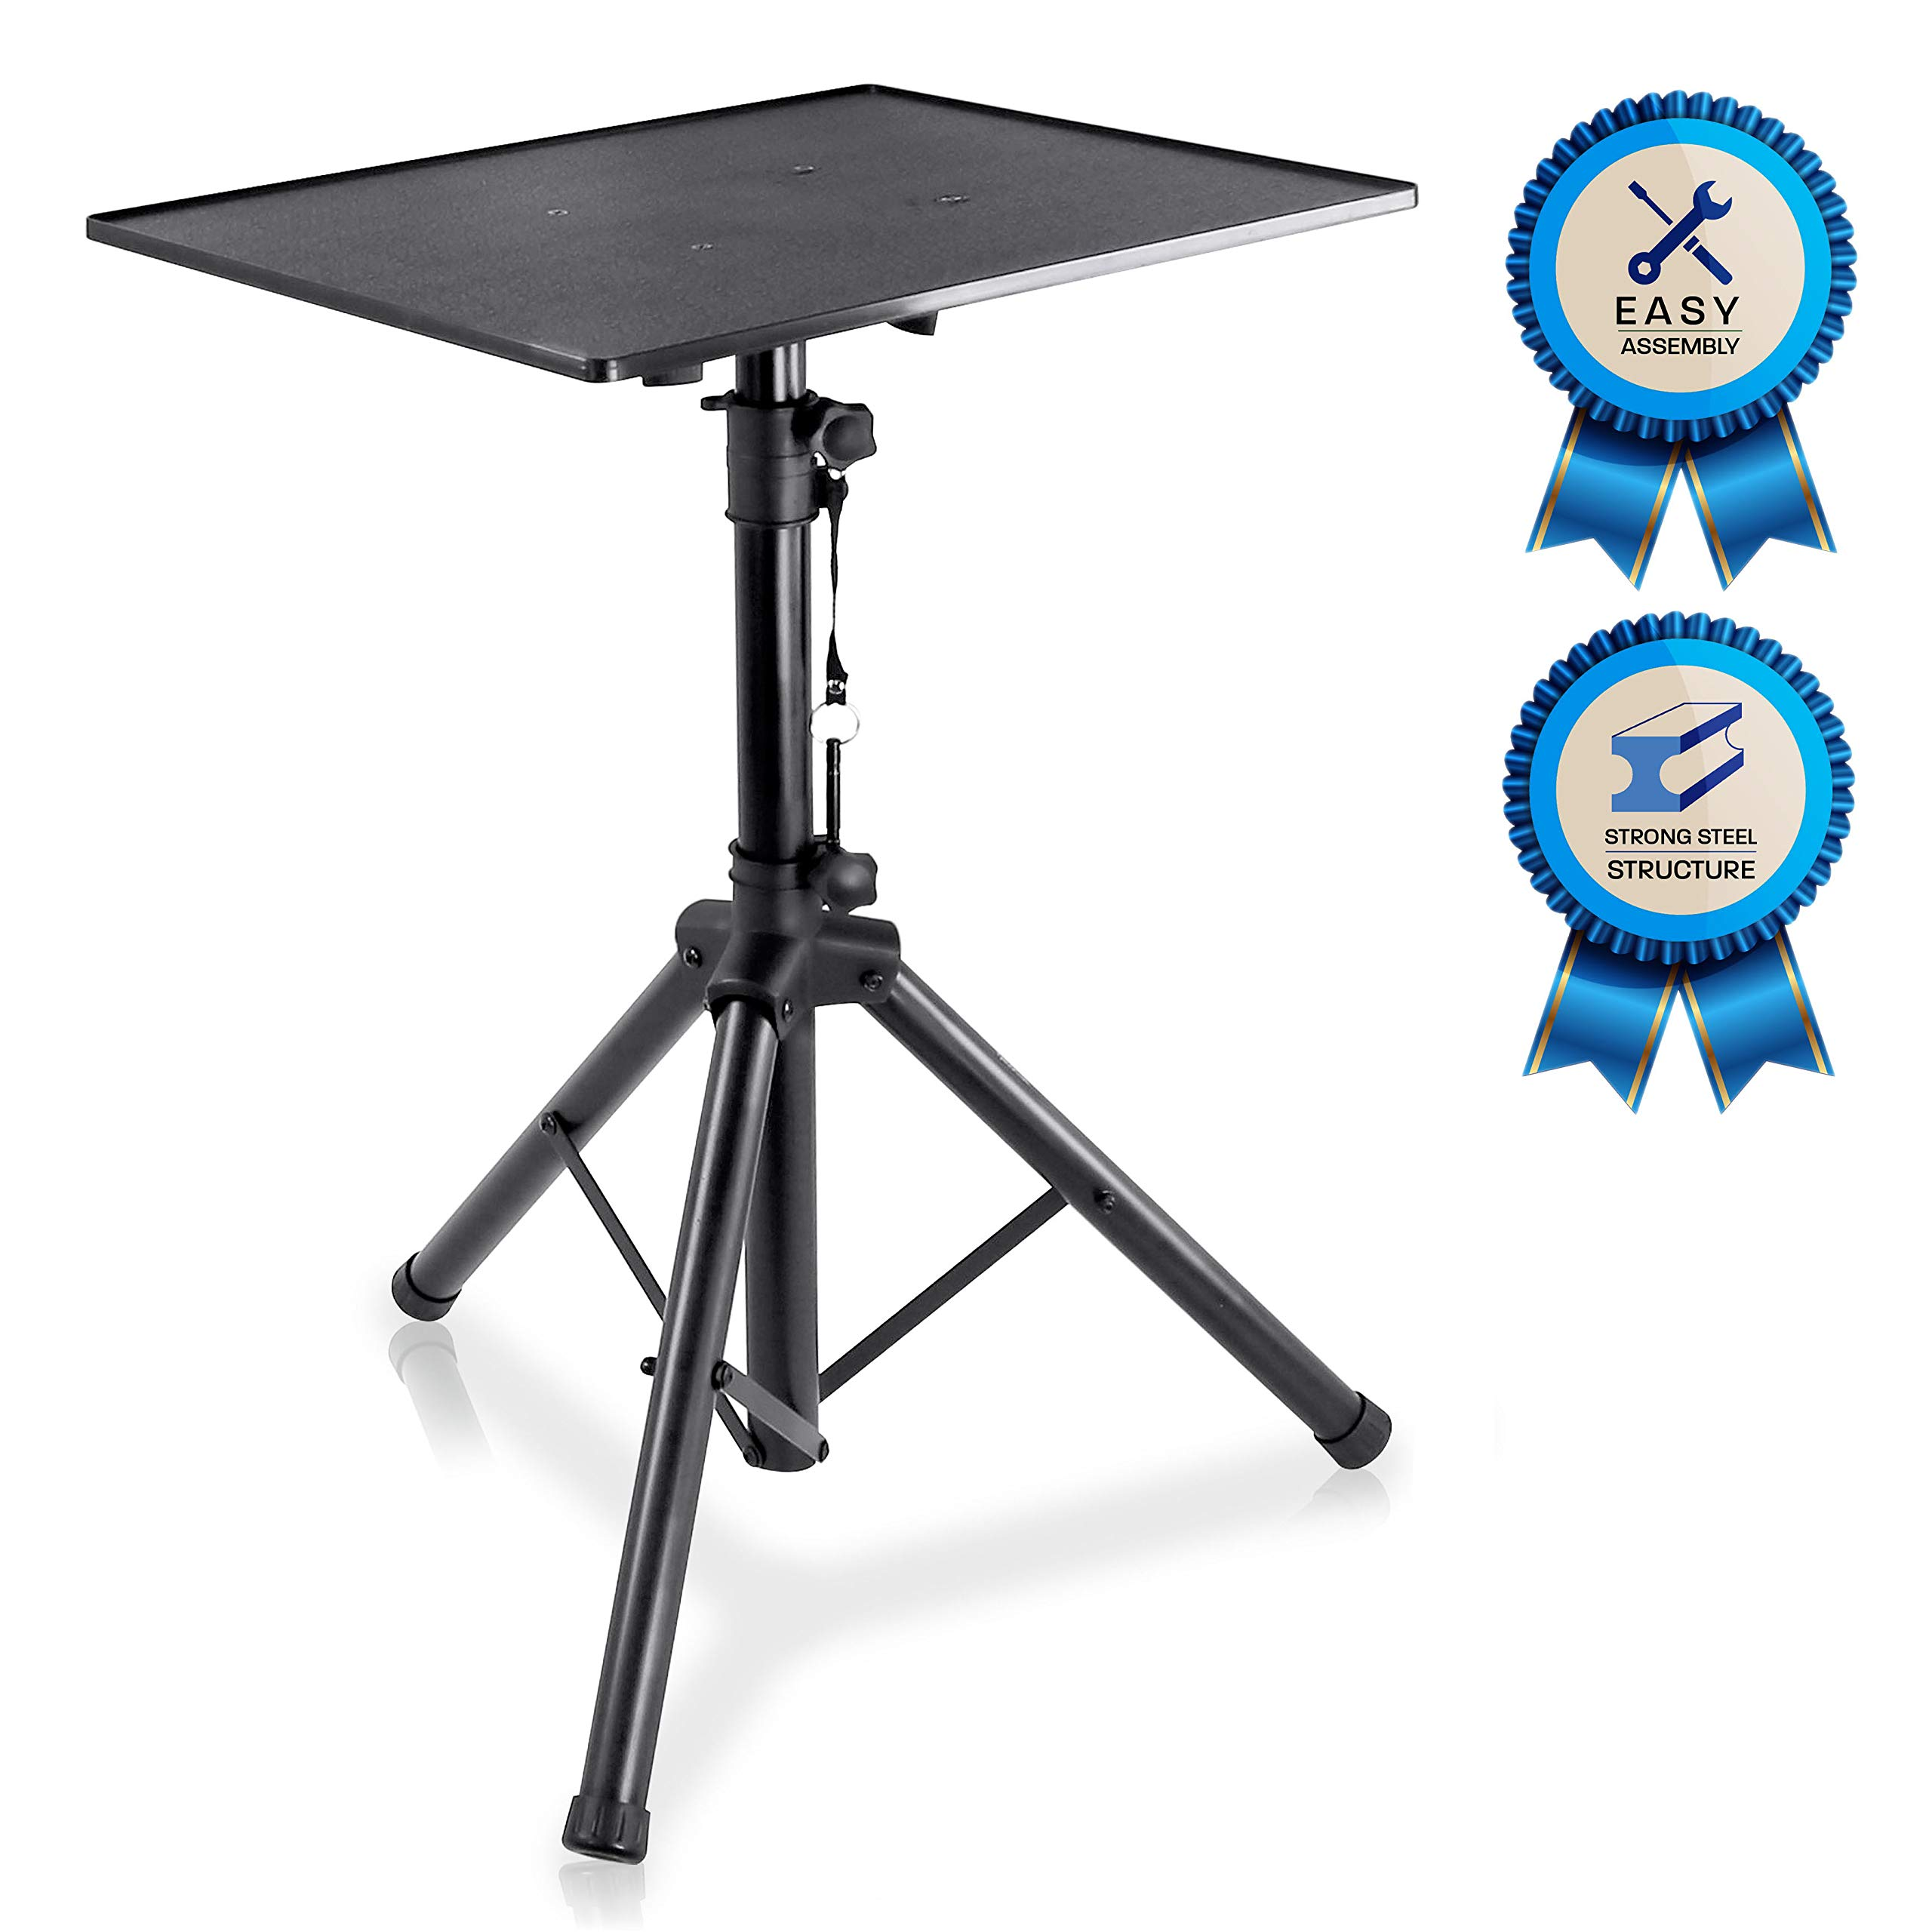 Pro DJ Laptop, Projector Stand - Adjustable Laptop Stand, Computer DJ Equipment Studio Stand Mount Holder, Height Adjustable, Laptop Projector Stand, 23'' to 41'', Good For Stage or Studio - Pyle  (PLPTS3) by Pyle